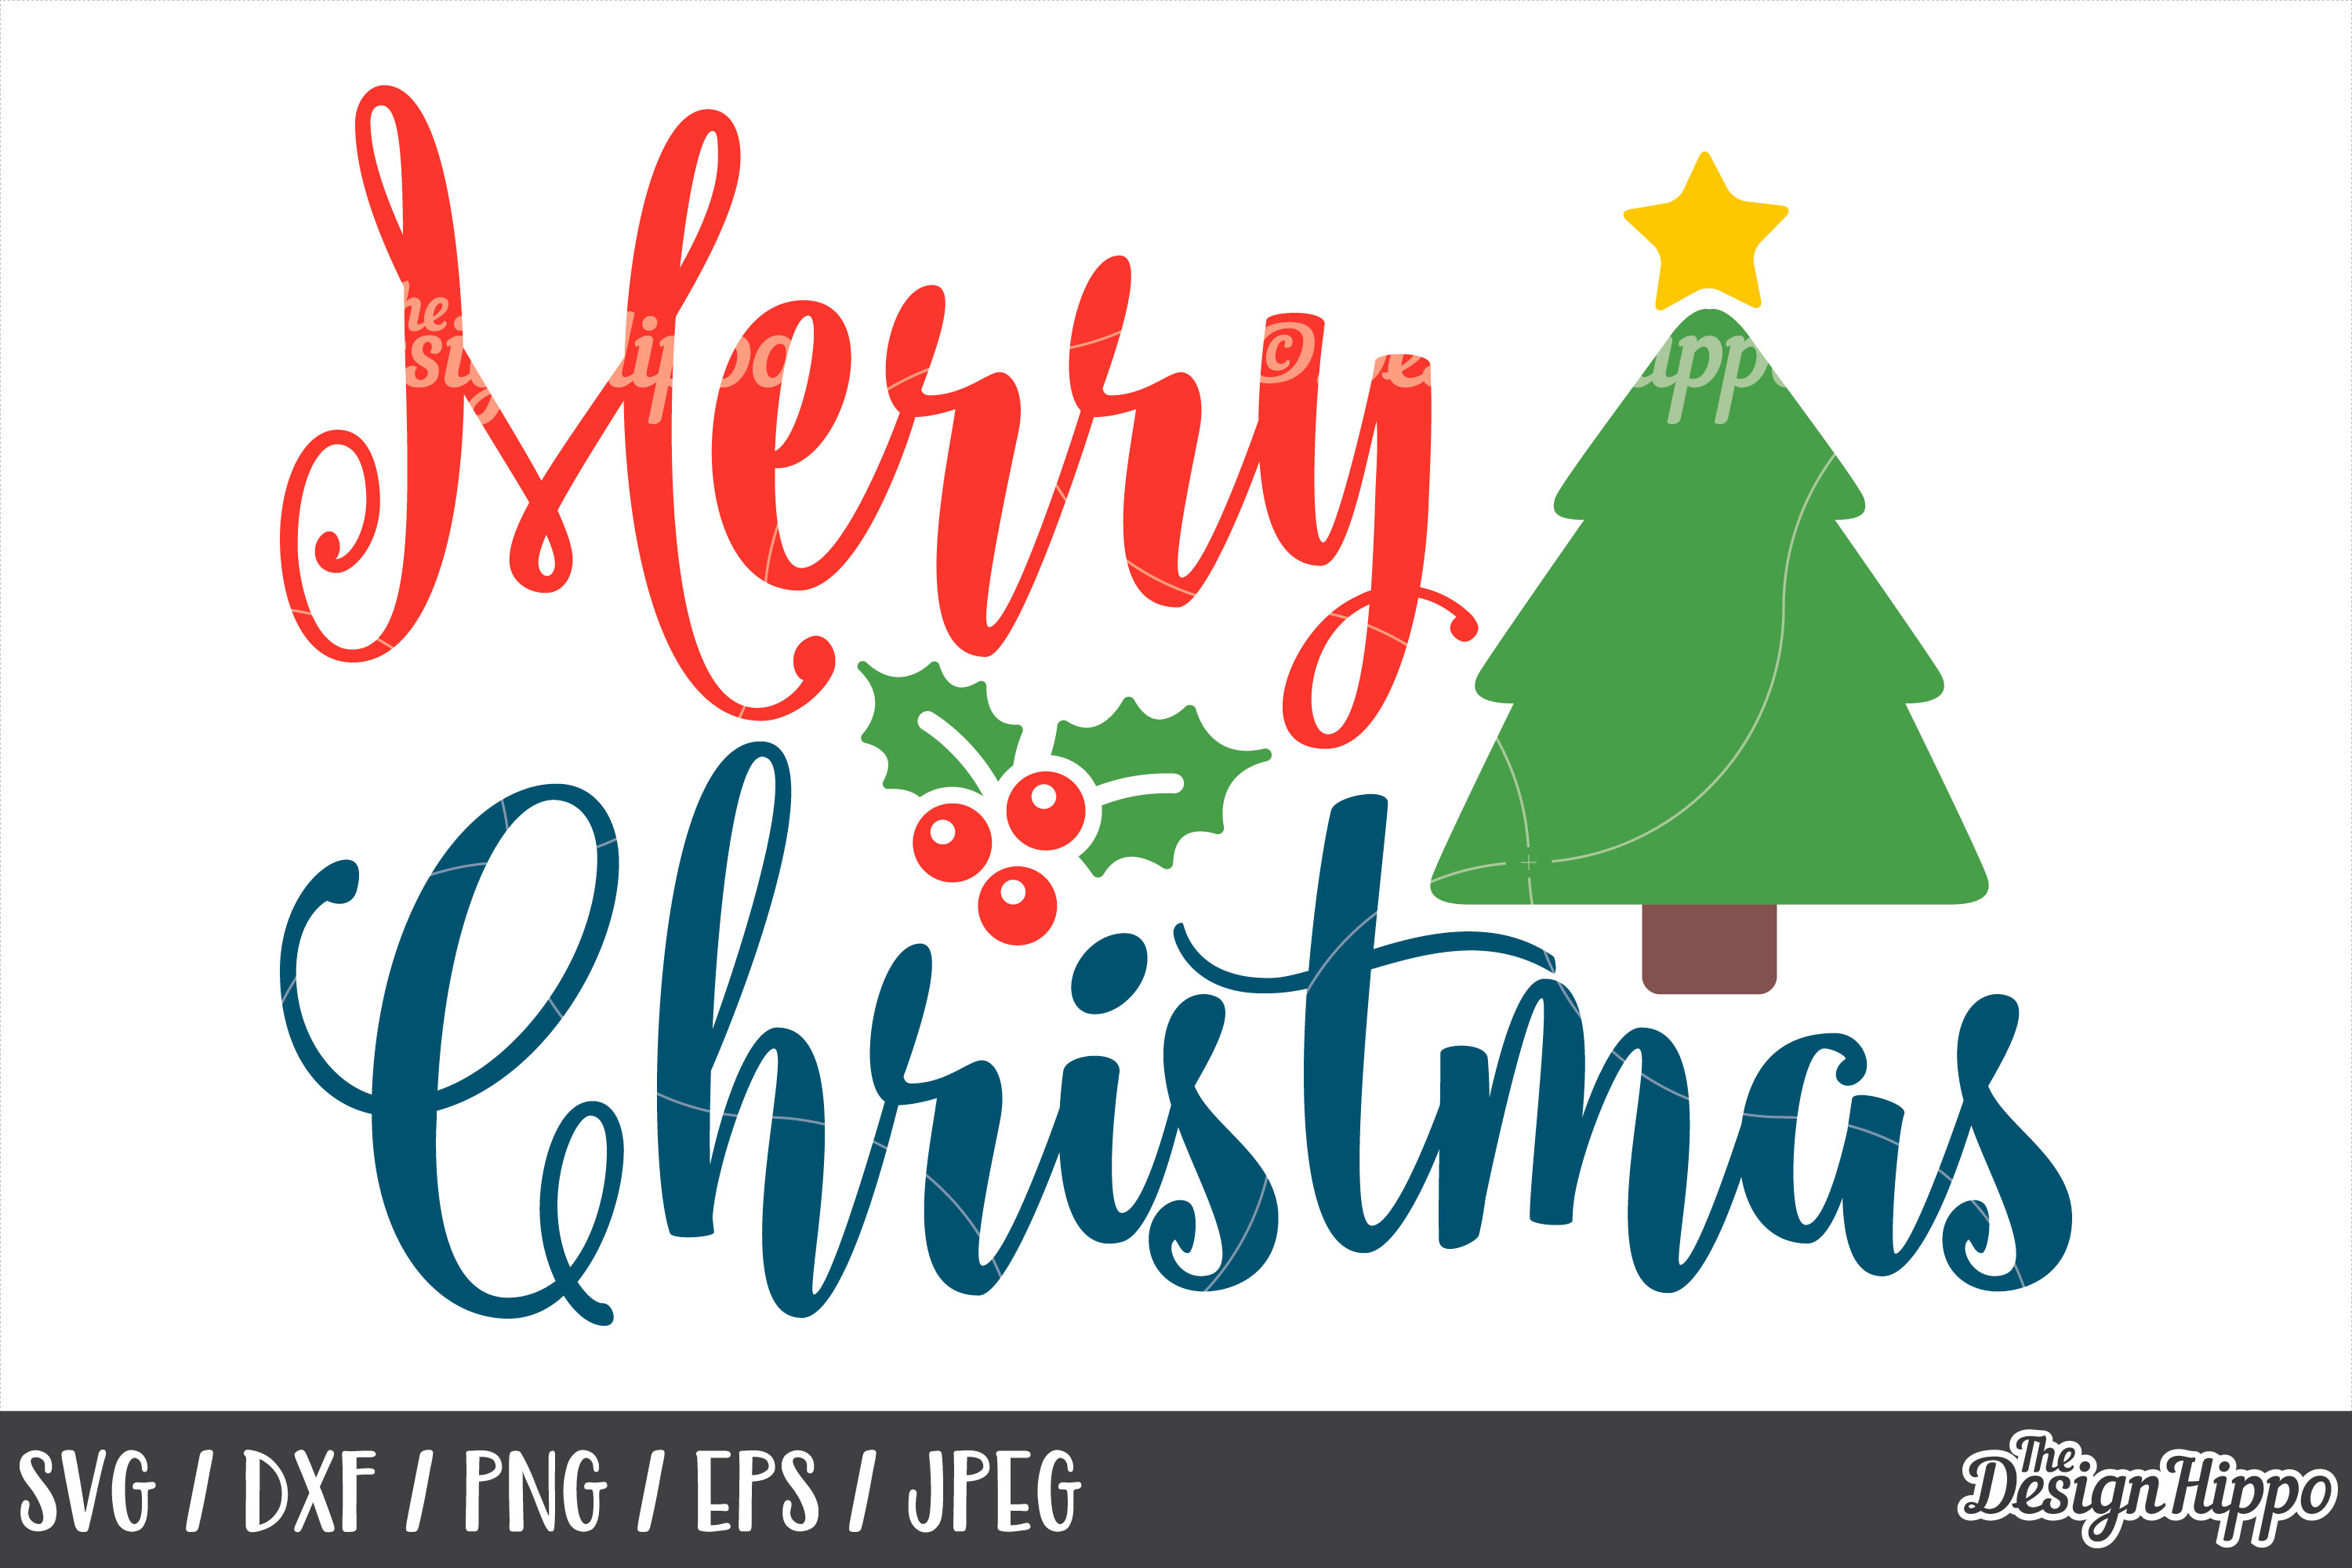 Christmas Tree, Merry Christmas SVG, DXF, PNG, Cricut, Files example image 1